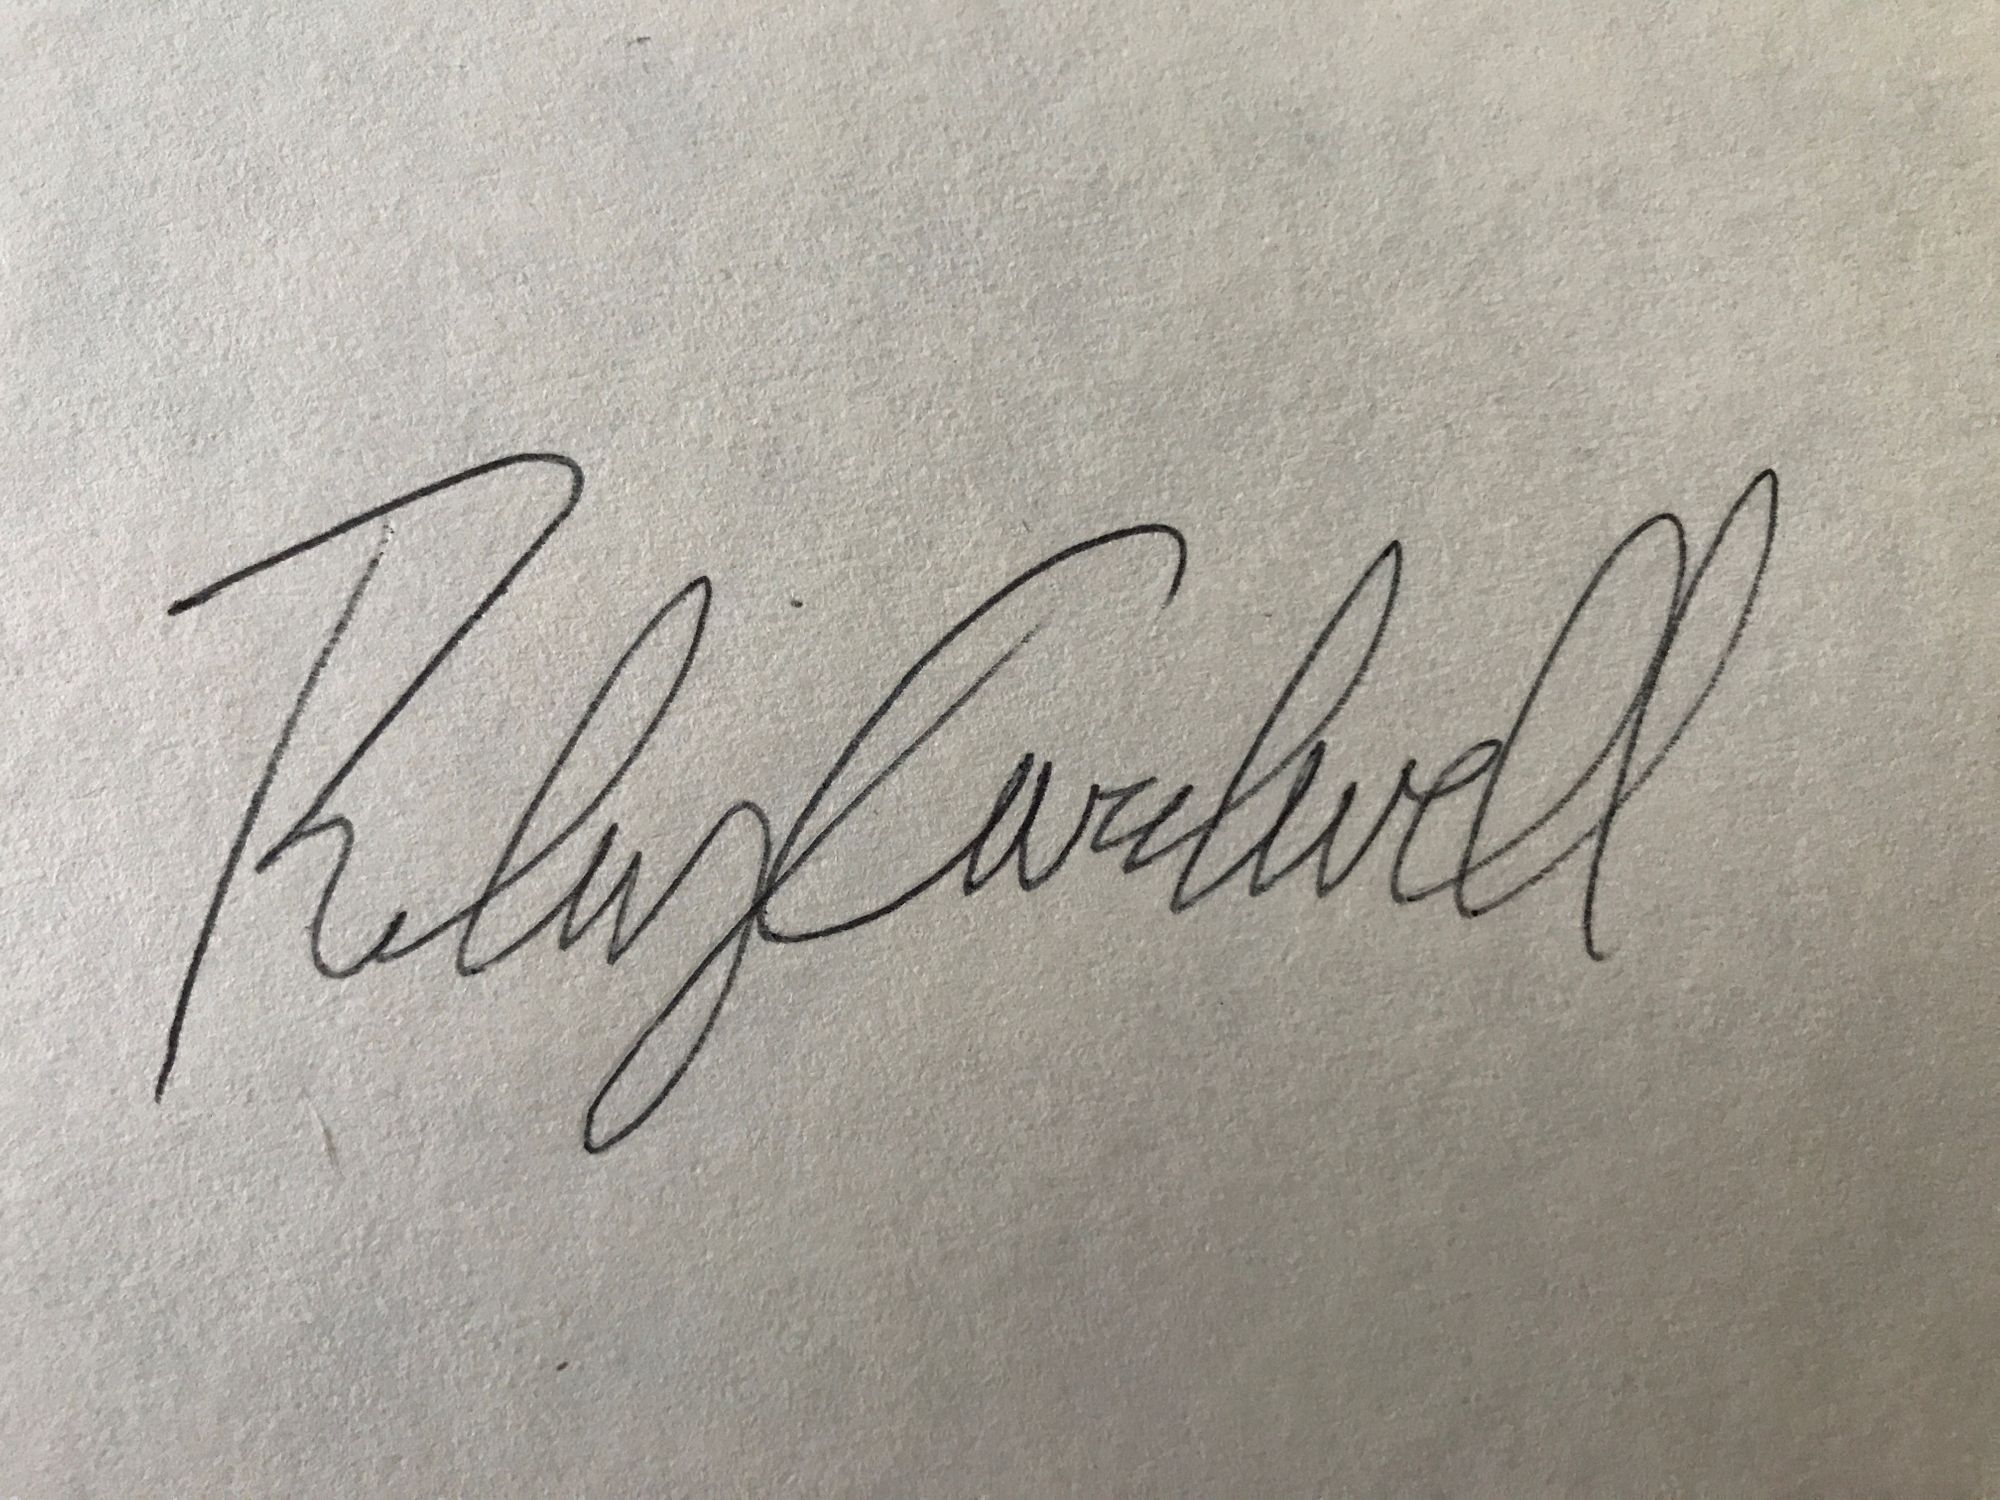 A photo of the author's signature on white paper.